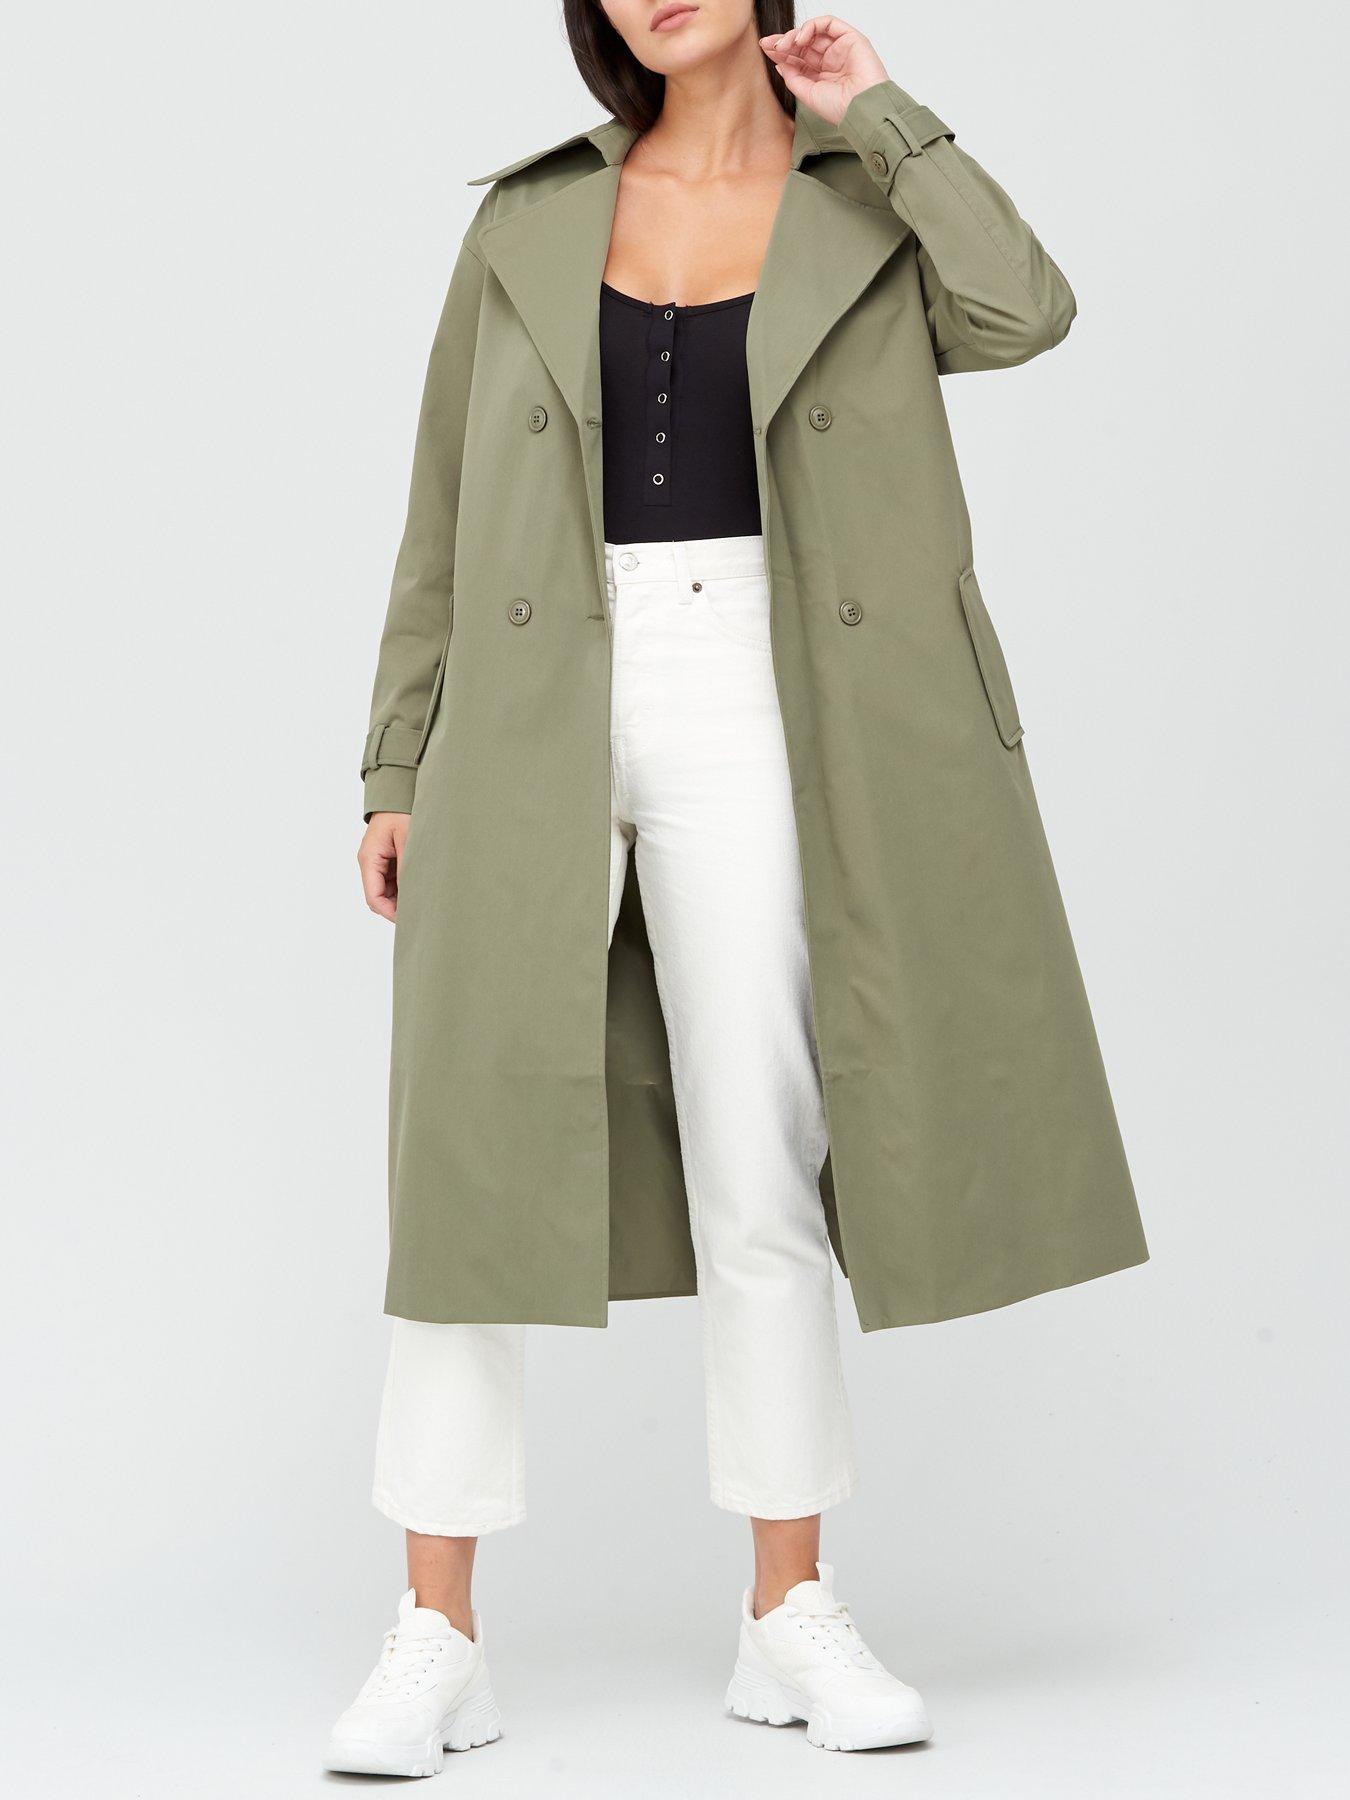 Coats Jackets and Trench Coats COLLECTION WOMEN